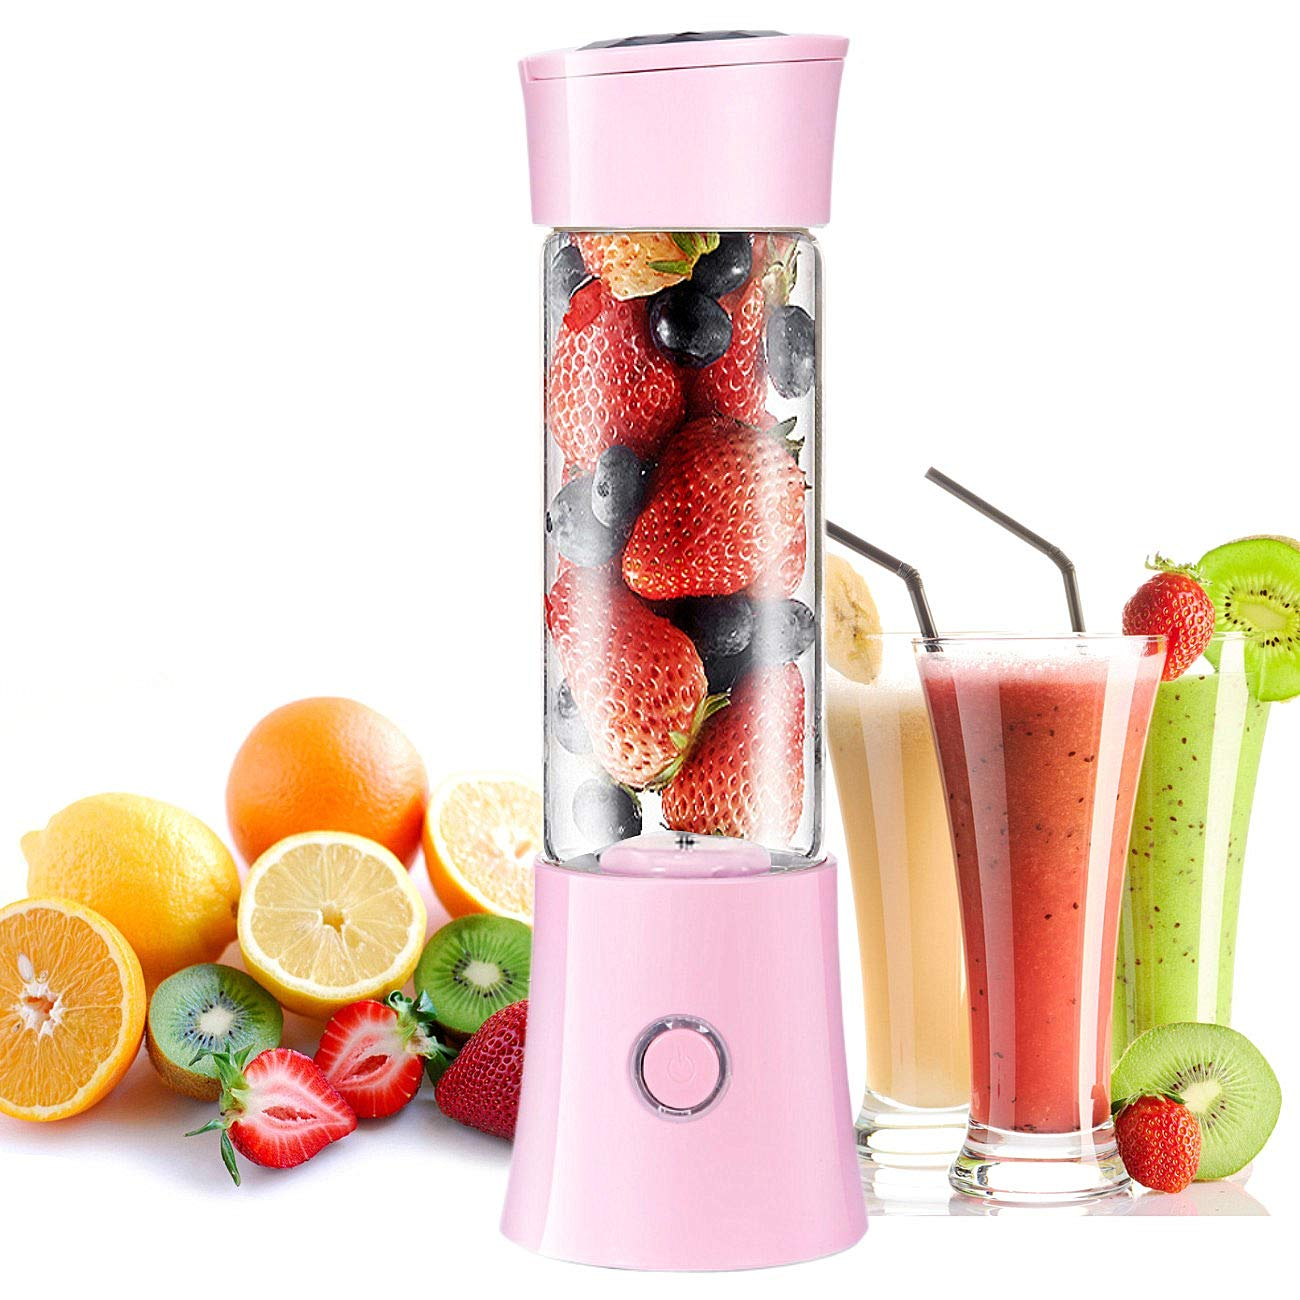 MusicSnail Portable Blender Small Personal Travel Juicer Fruit Mixer Glass Cup for Shakes Smoothies Protein Baby Food Mute Stainless Steel 6-Blades USB Rechargeable 4000mAh Battery BPA Free FDA FCC(pink)